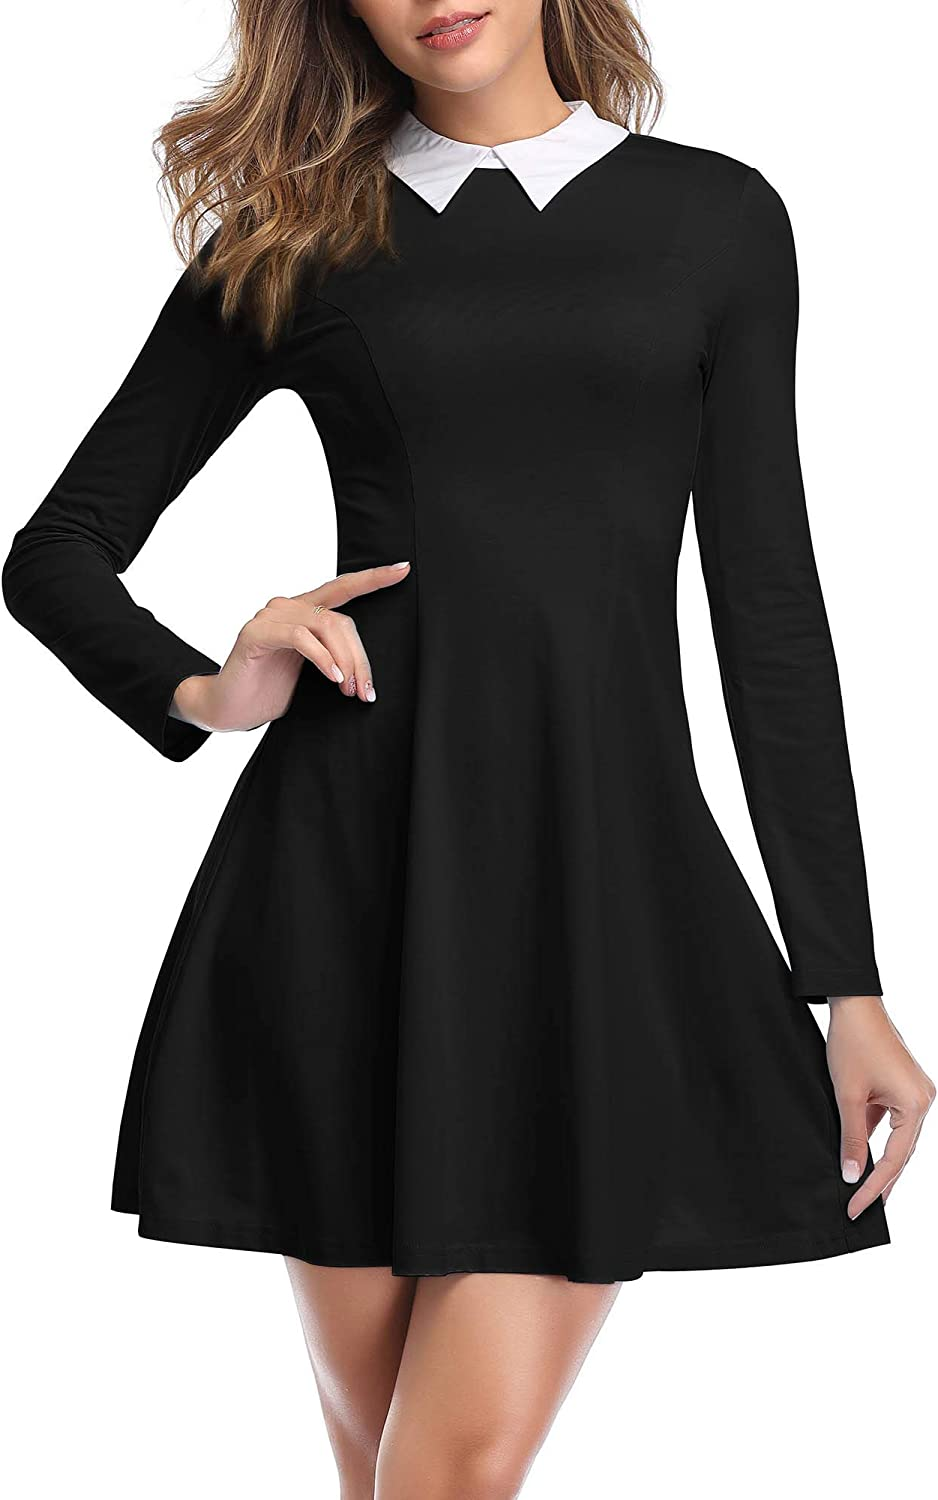 JECEIKA Womens Long Sleeves Peter Pan Collar Aline Fit and Flare Wednesday Addam Dresses